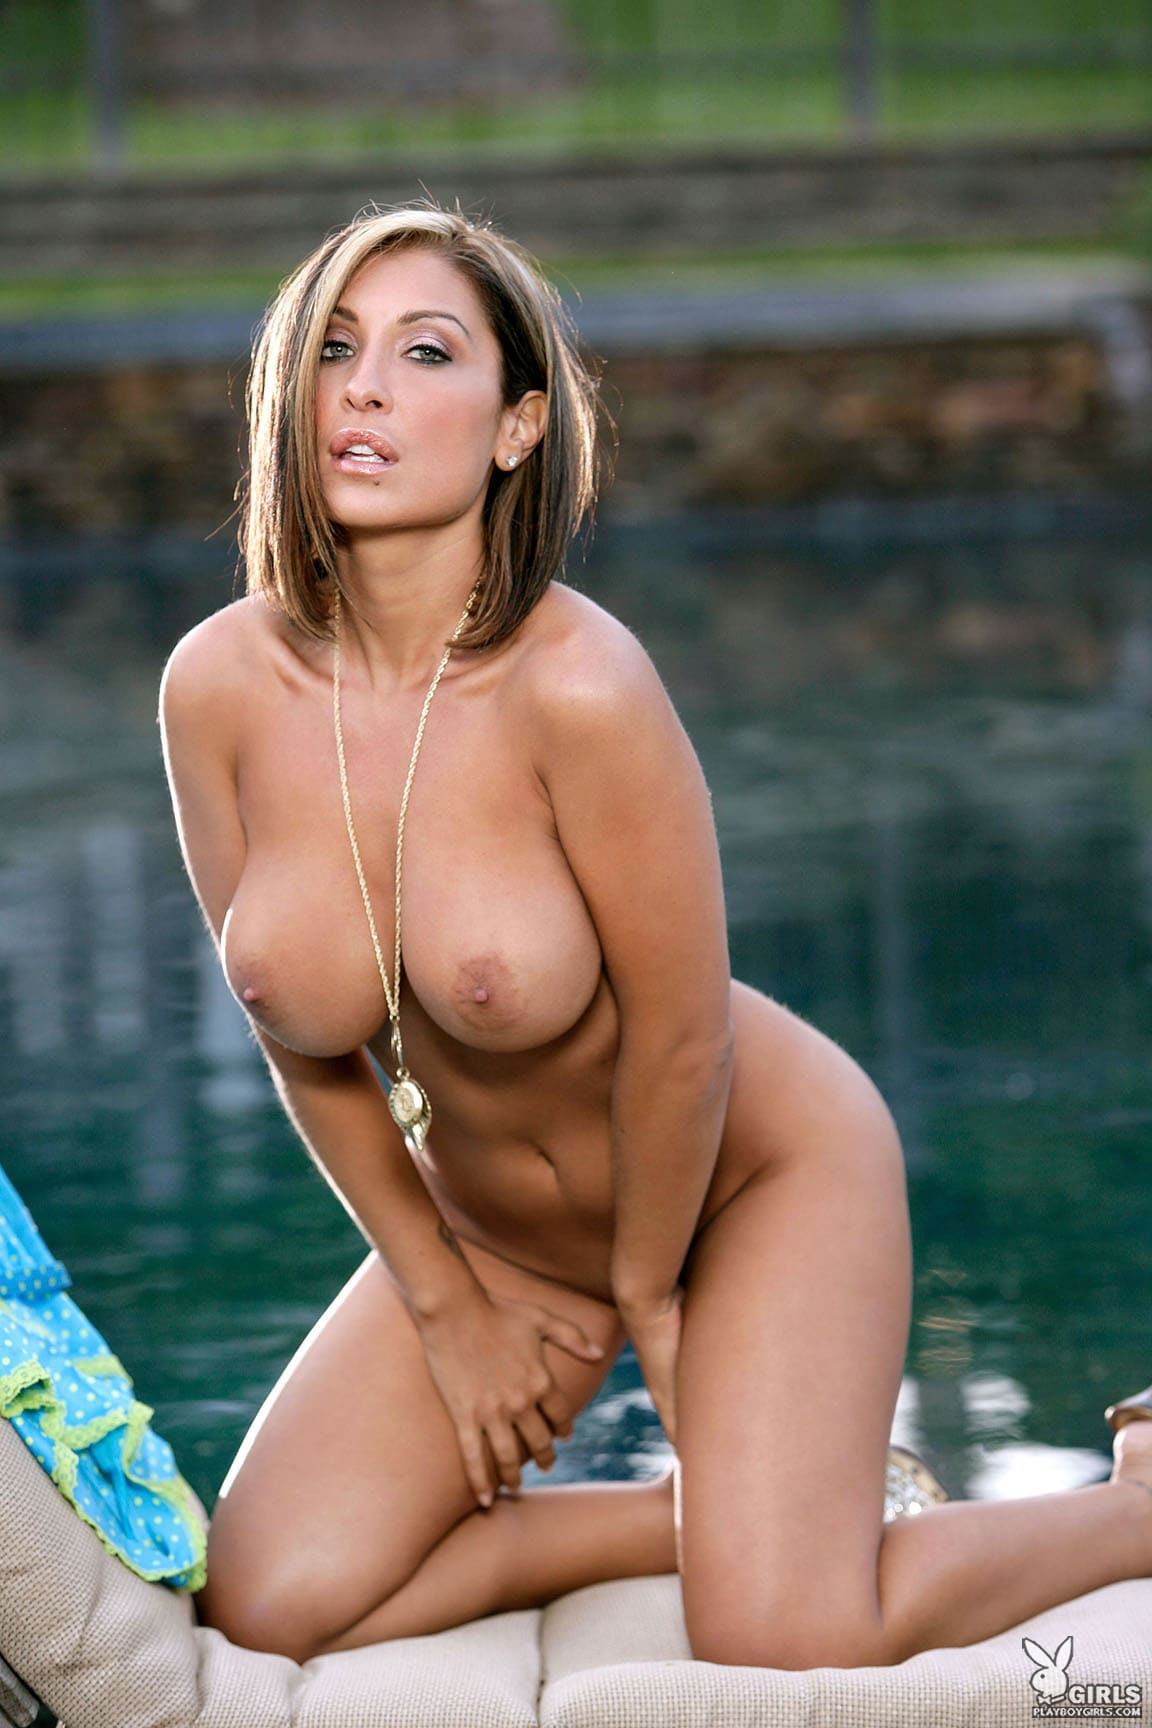 Really surprises. Jessica canizales nude gifs the